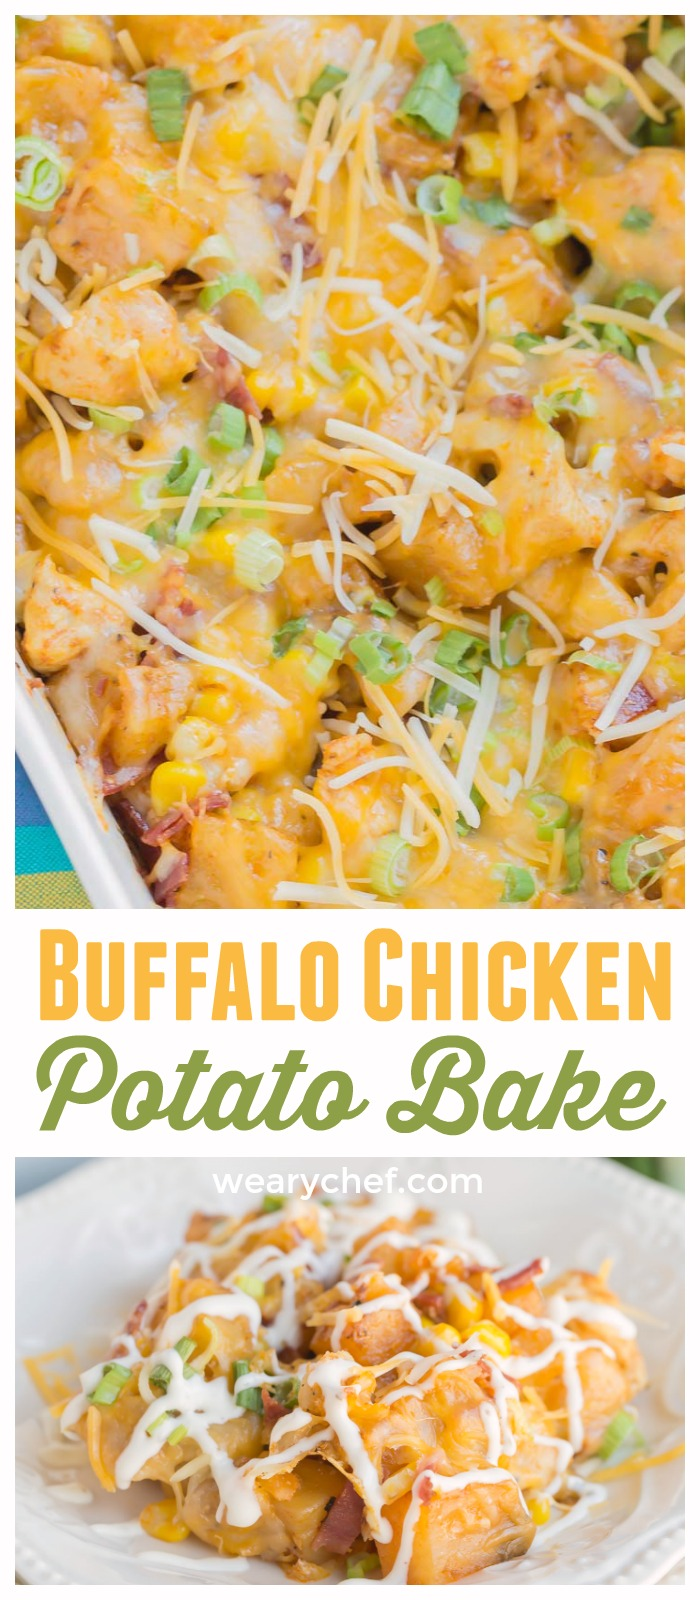 This flavorful Buffalo Chicken Potato Casserole comes together easily and is always a family favorite dinner recipe!